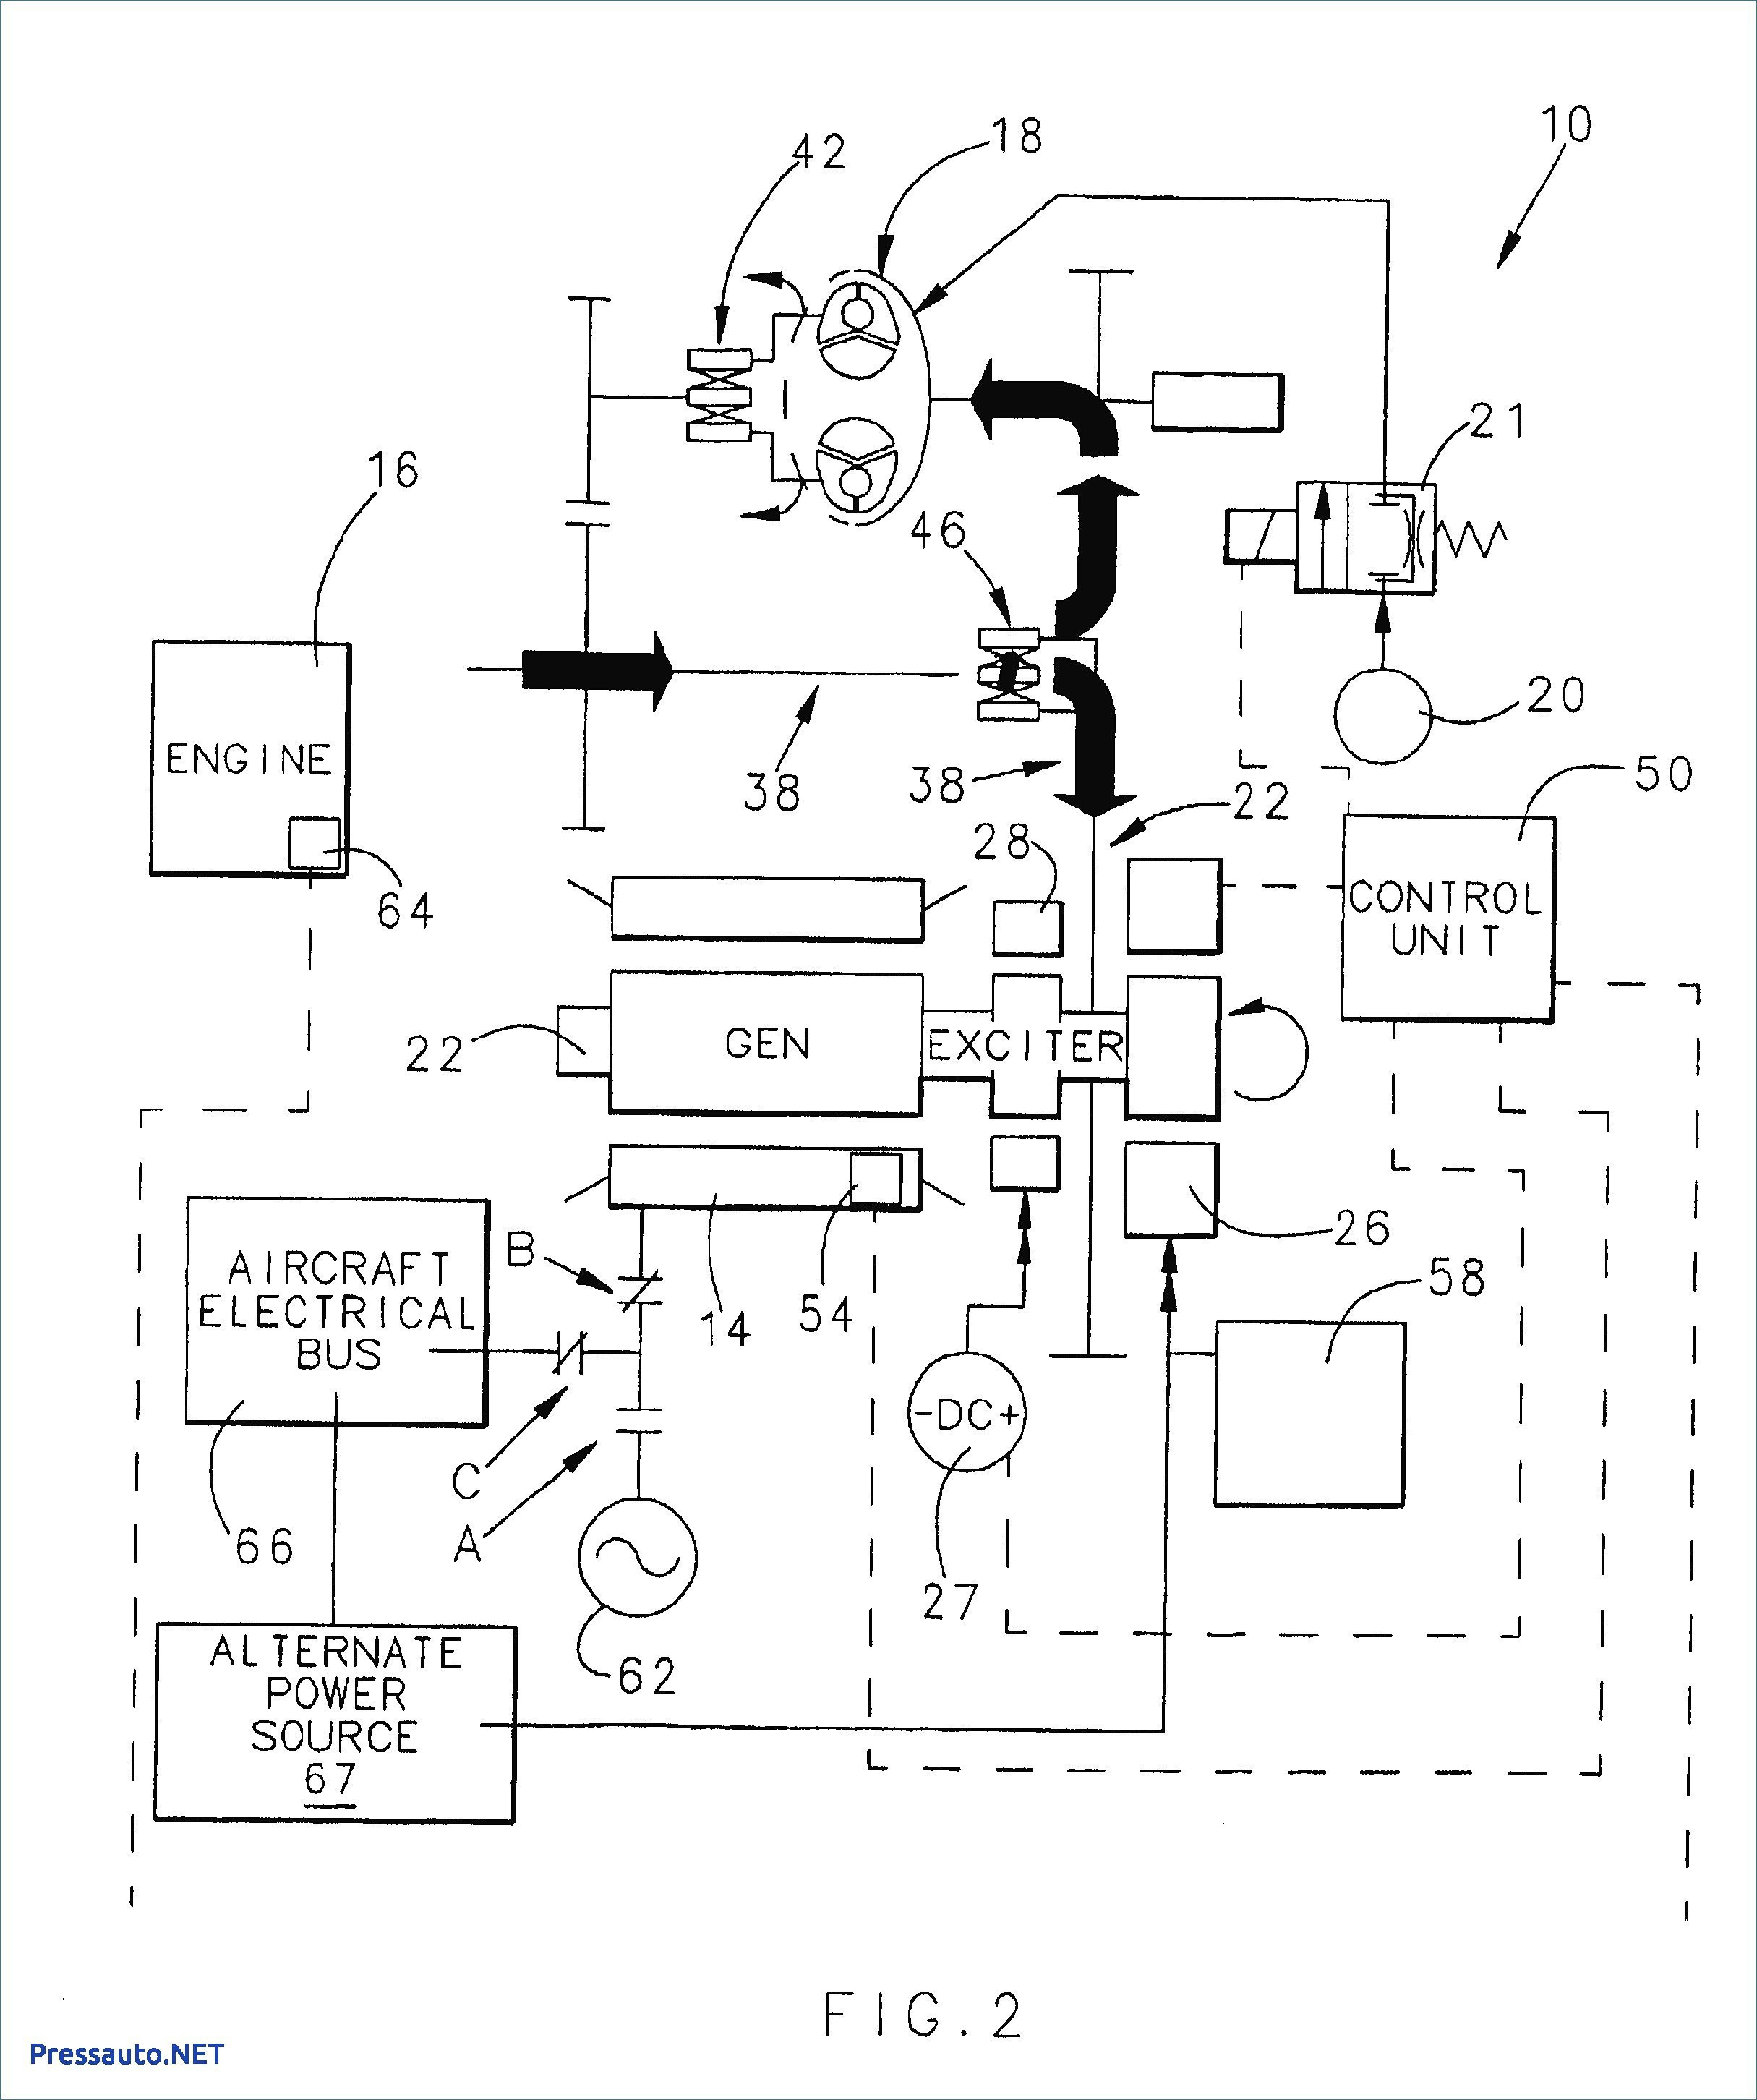 Welder Schematic 220v Wiring Diagram Library 3 Prong 220 Outlet Plugs And Receptacles Rh Banyan Palace Com 200 Lincoln